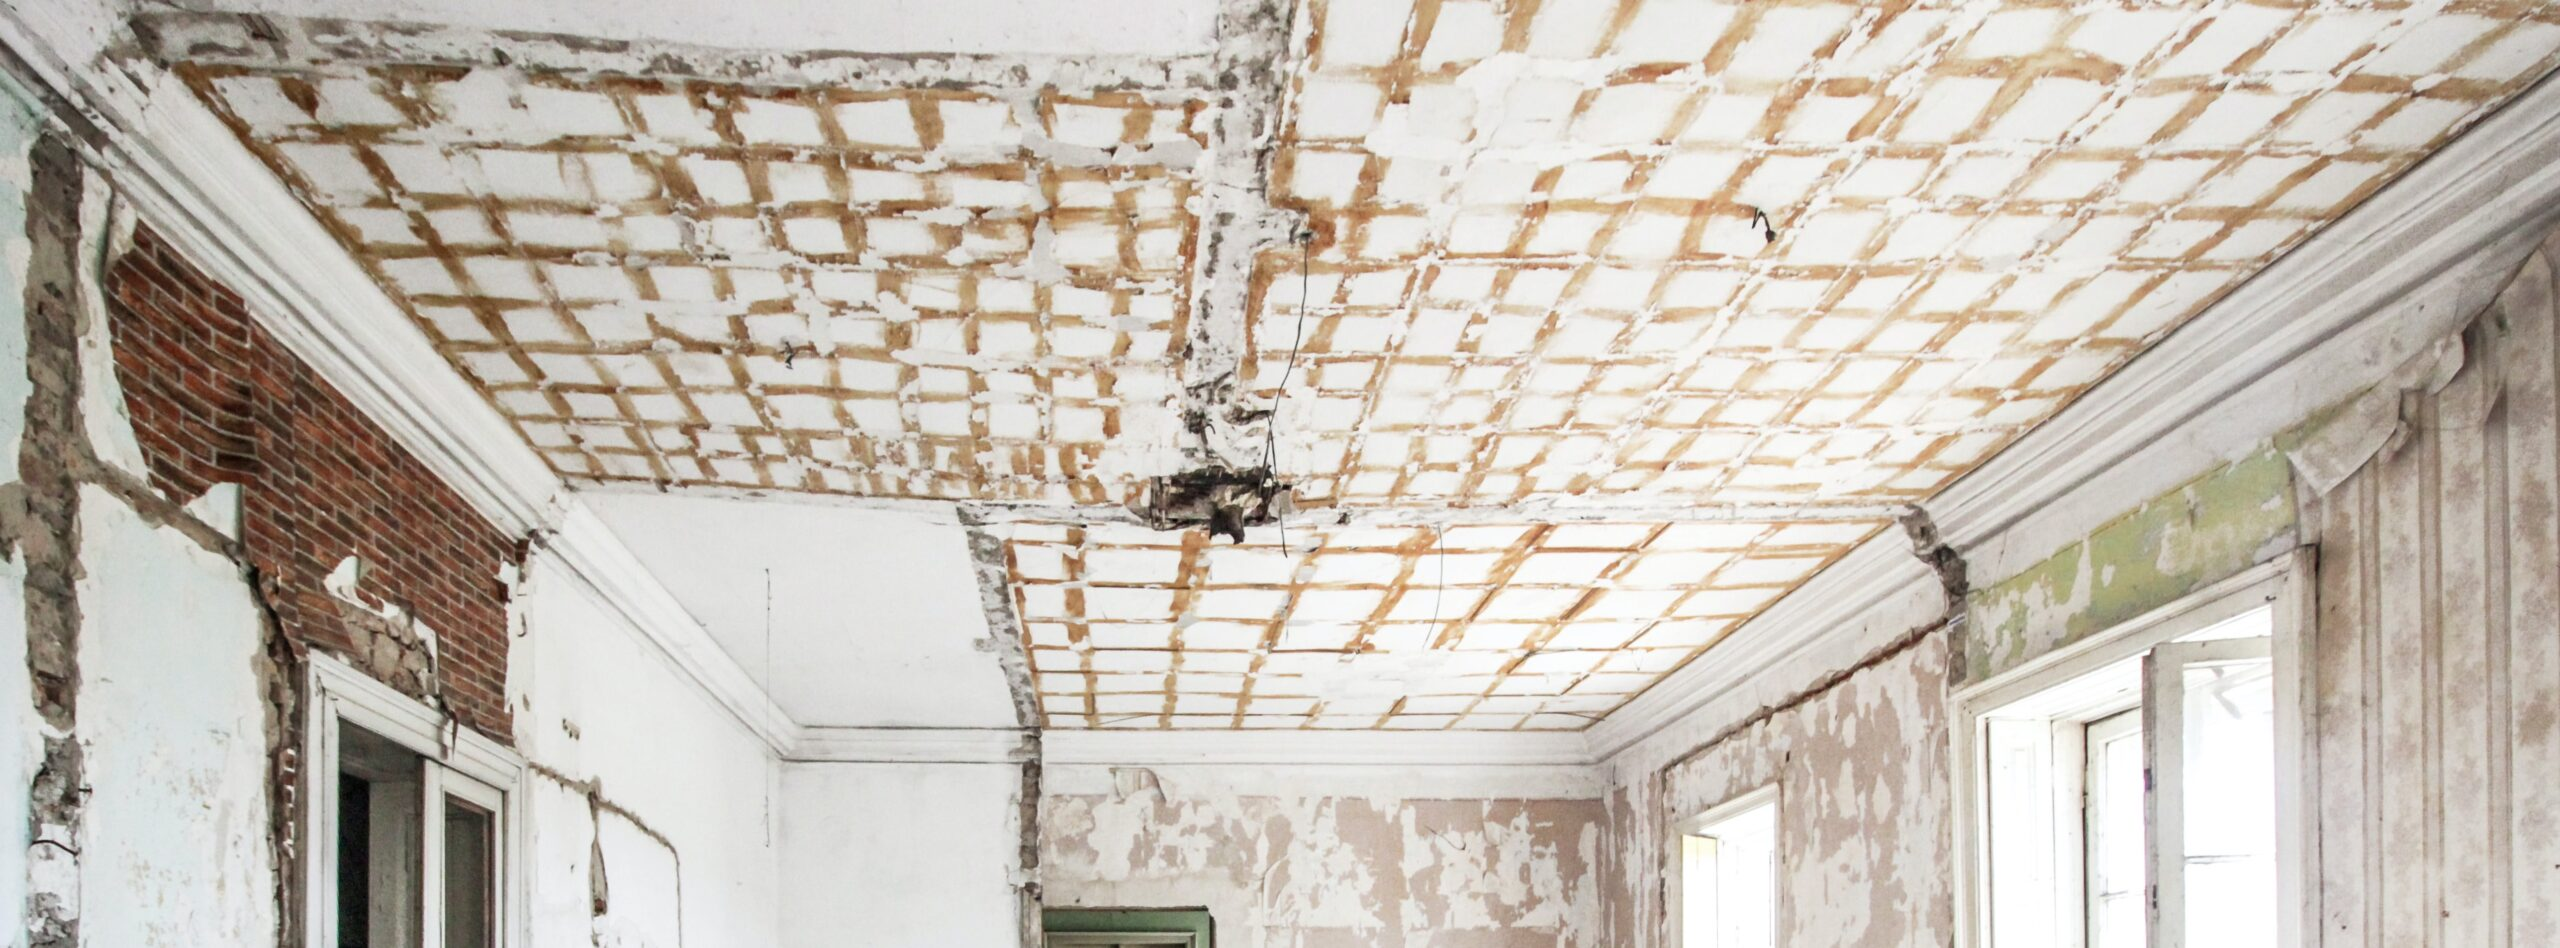 Managing the inevitable surprises during housing rehab projects